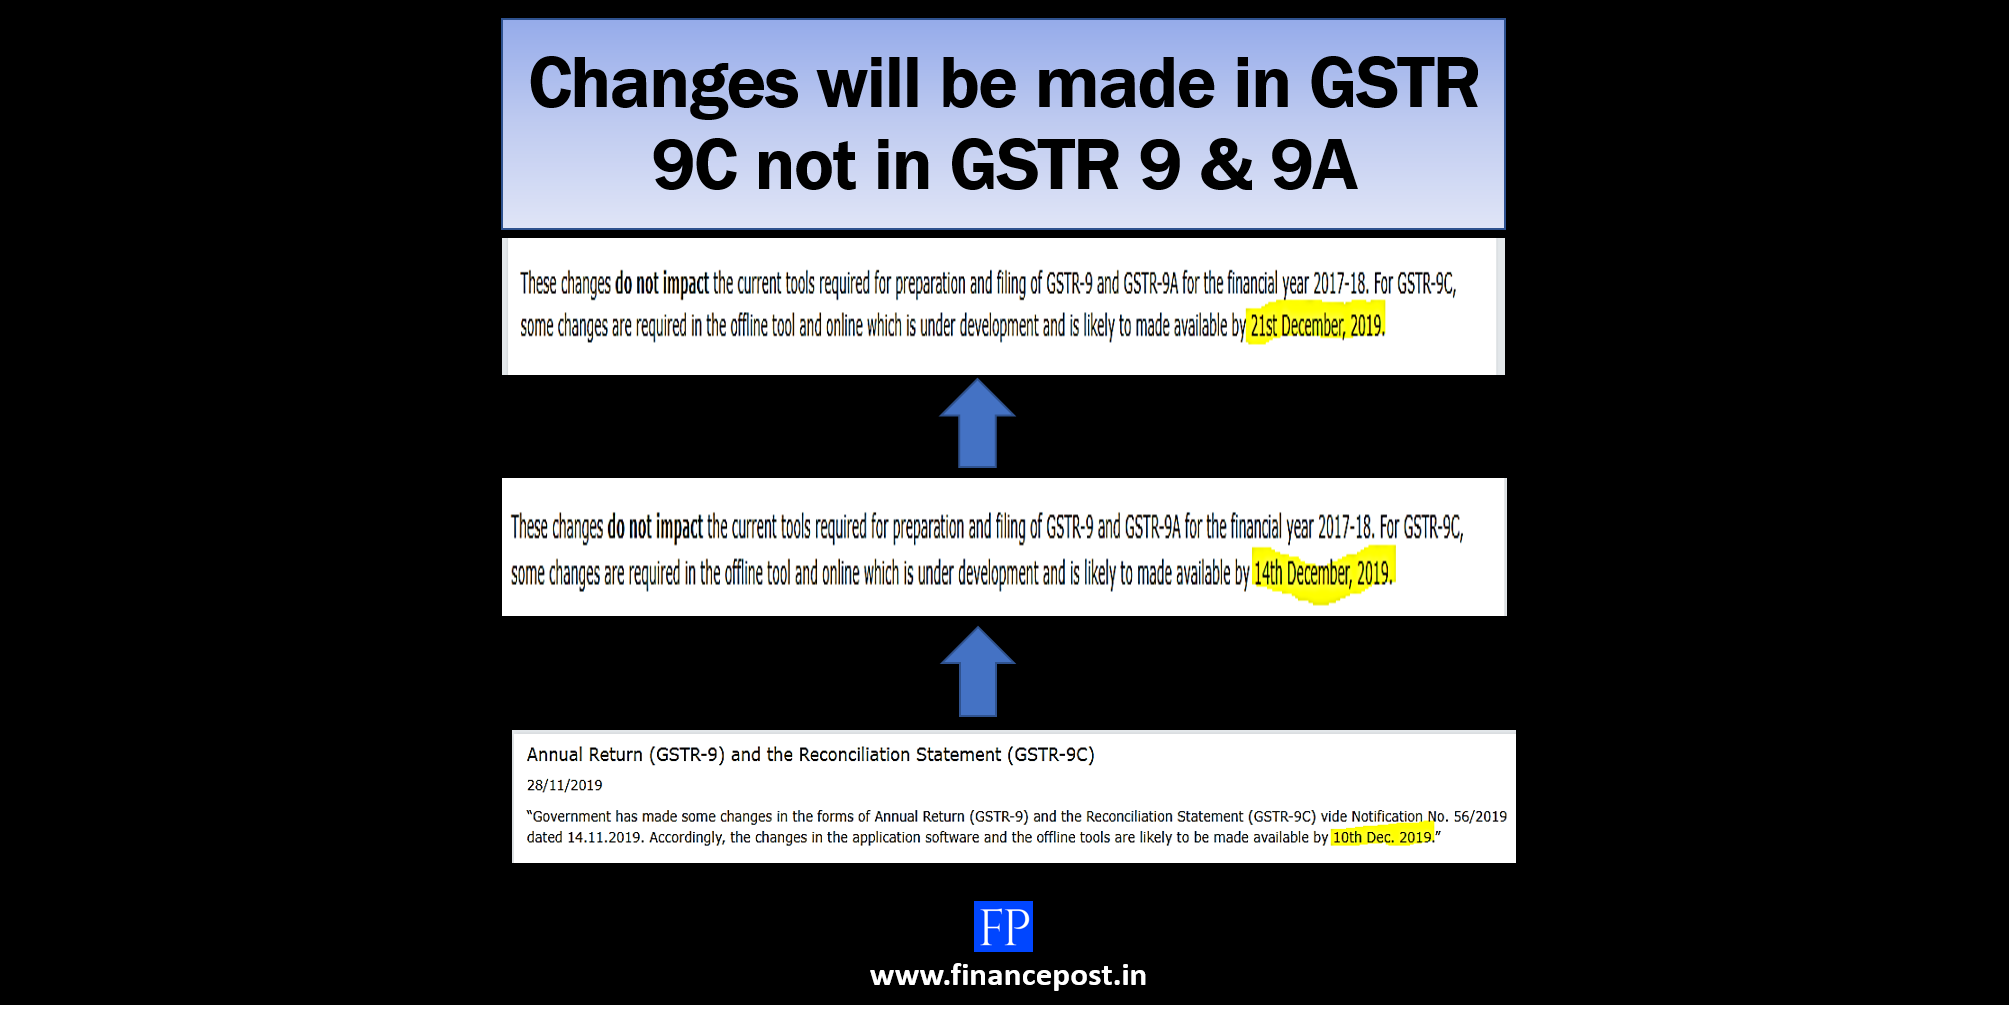 changes will be made in gstr c not gstr 9 and 9a